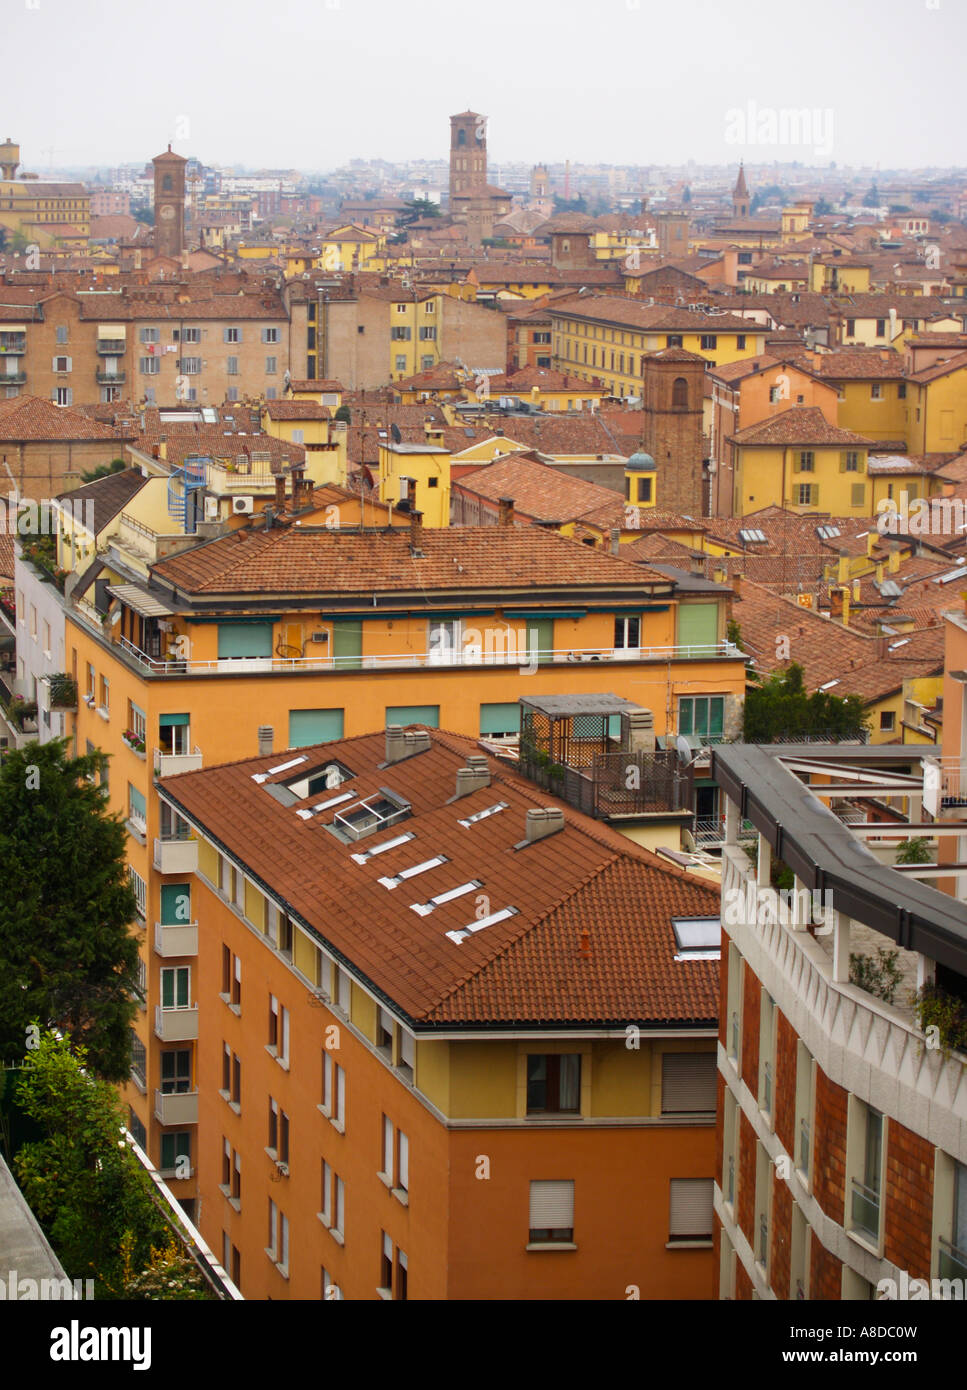 View of the skyline and rooftops. Bologna Emilia Romagna Italy - Stock Image